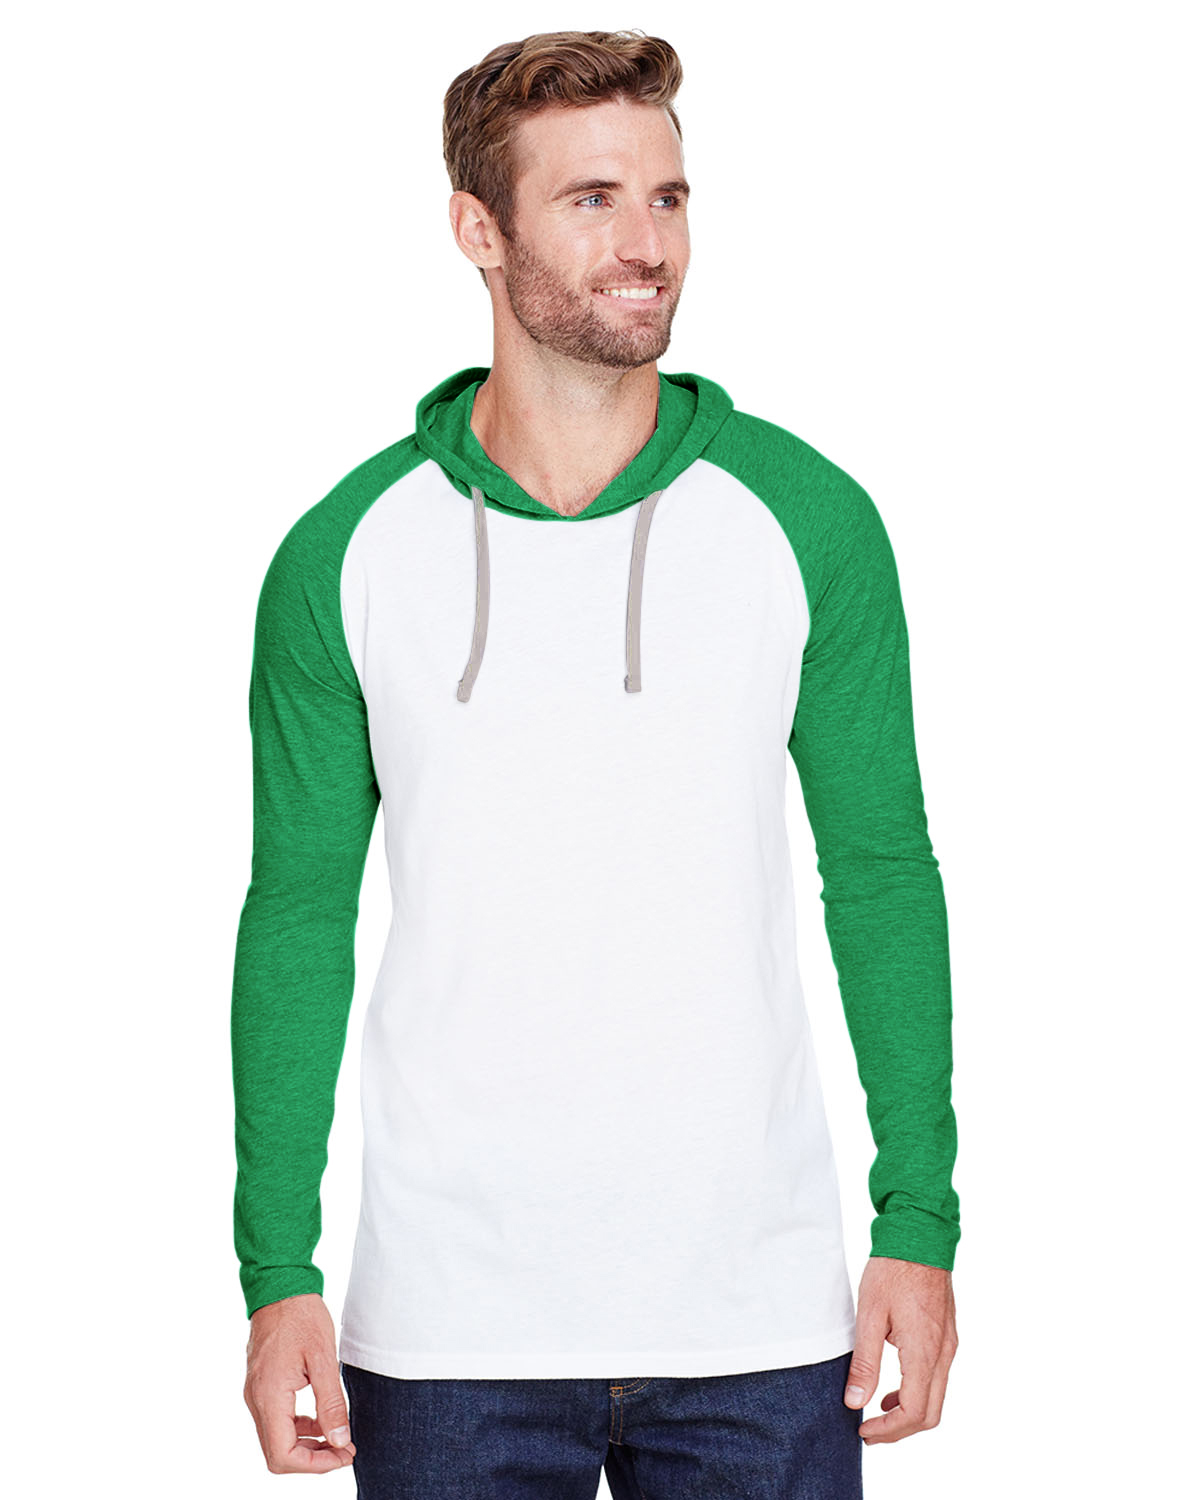 LAT 6917 - Fine Jersey Long Sleeve Hooded Raglan T-Shirt